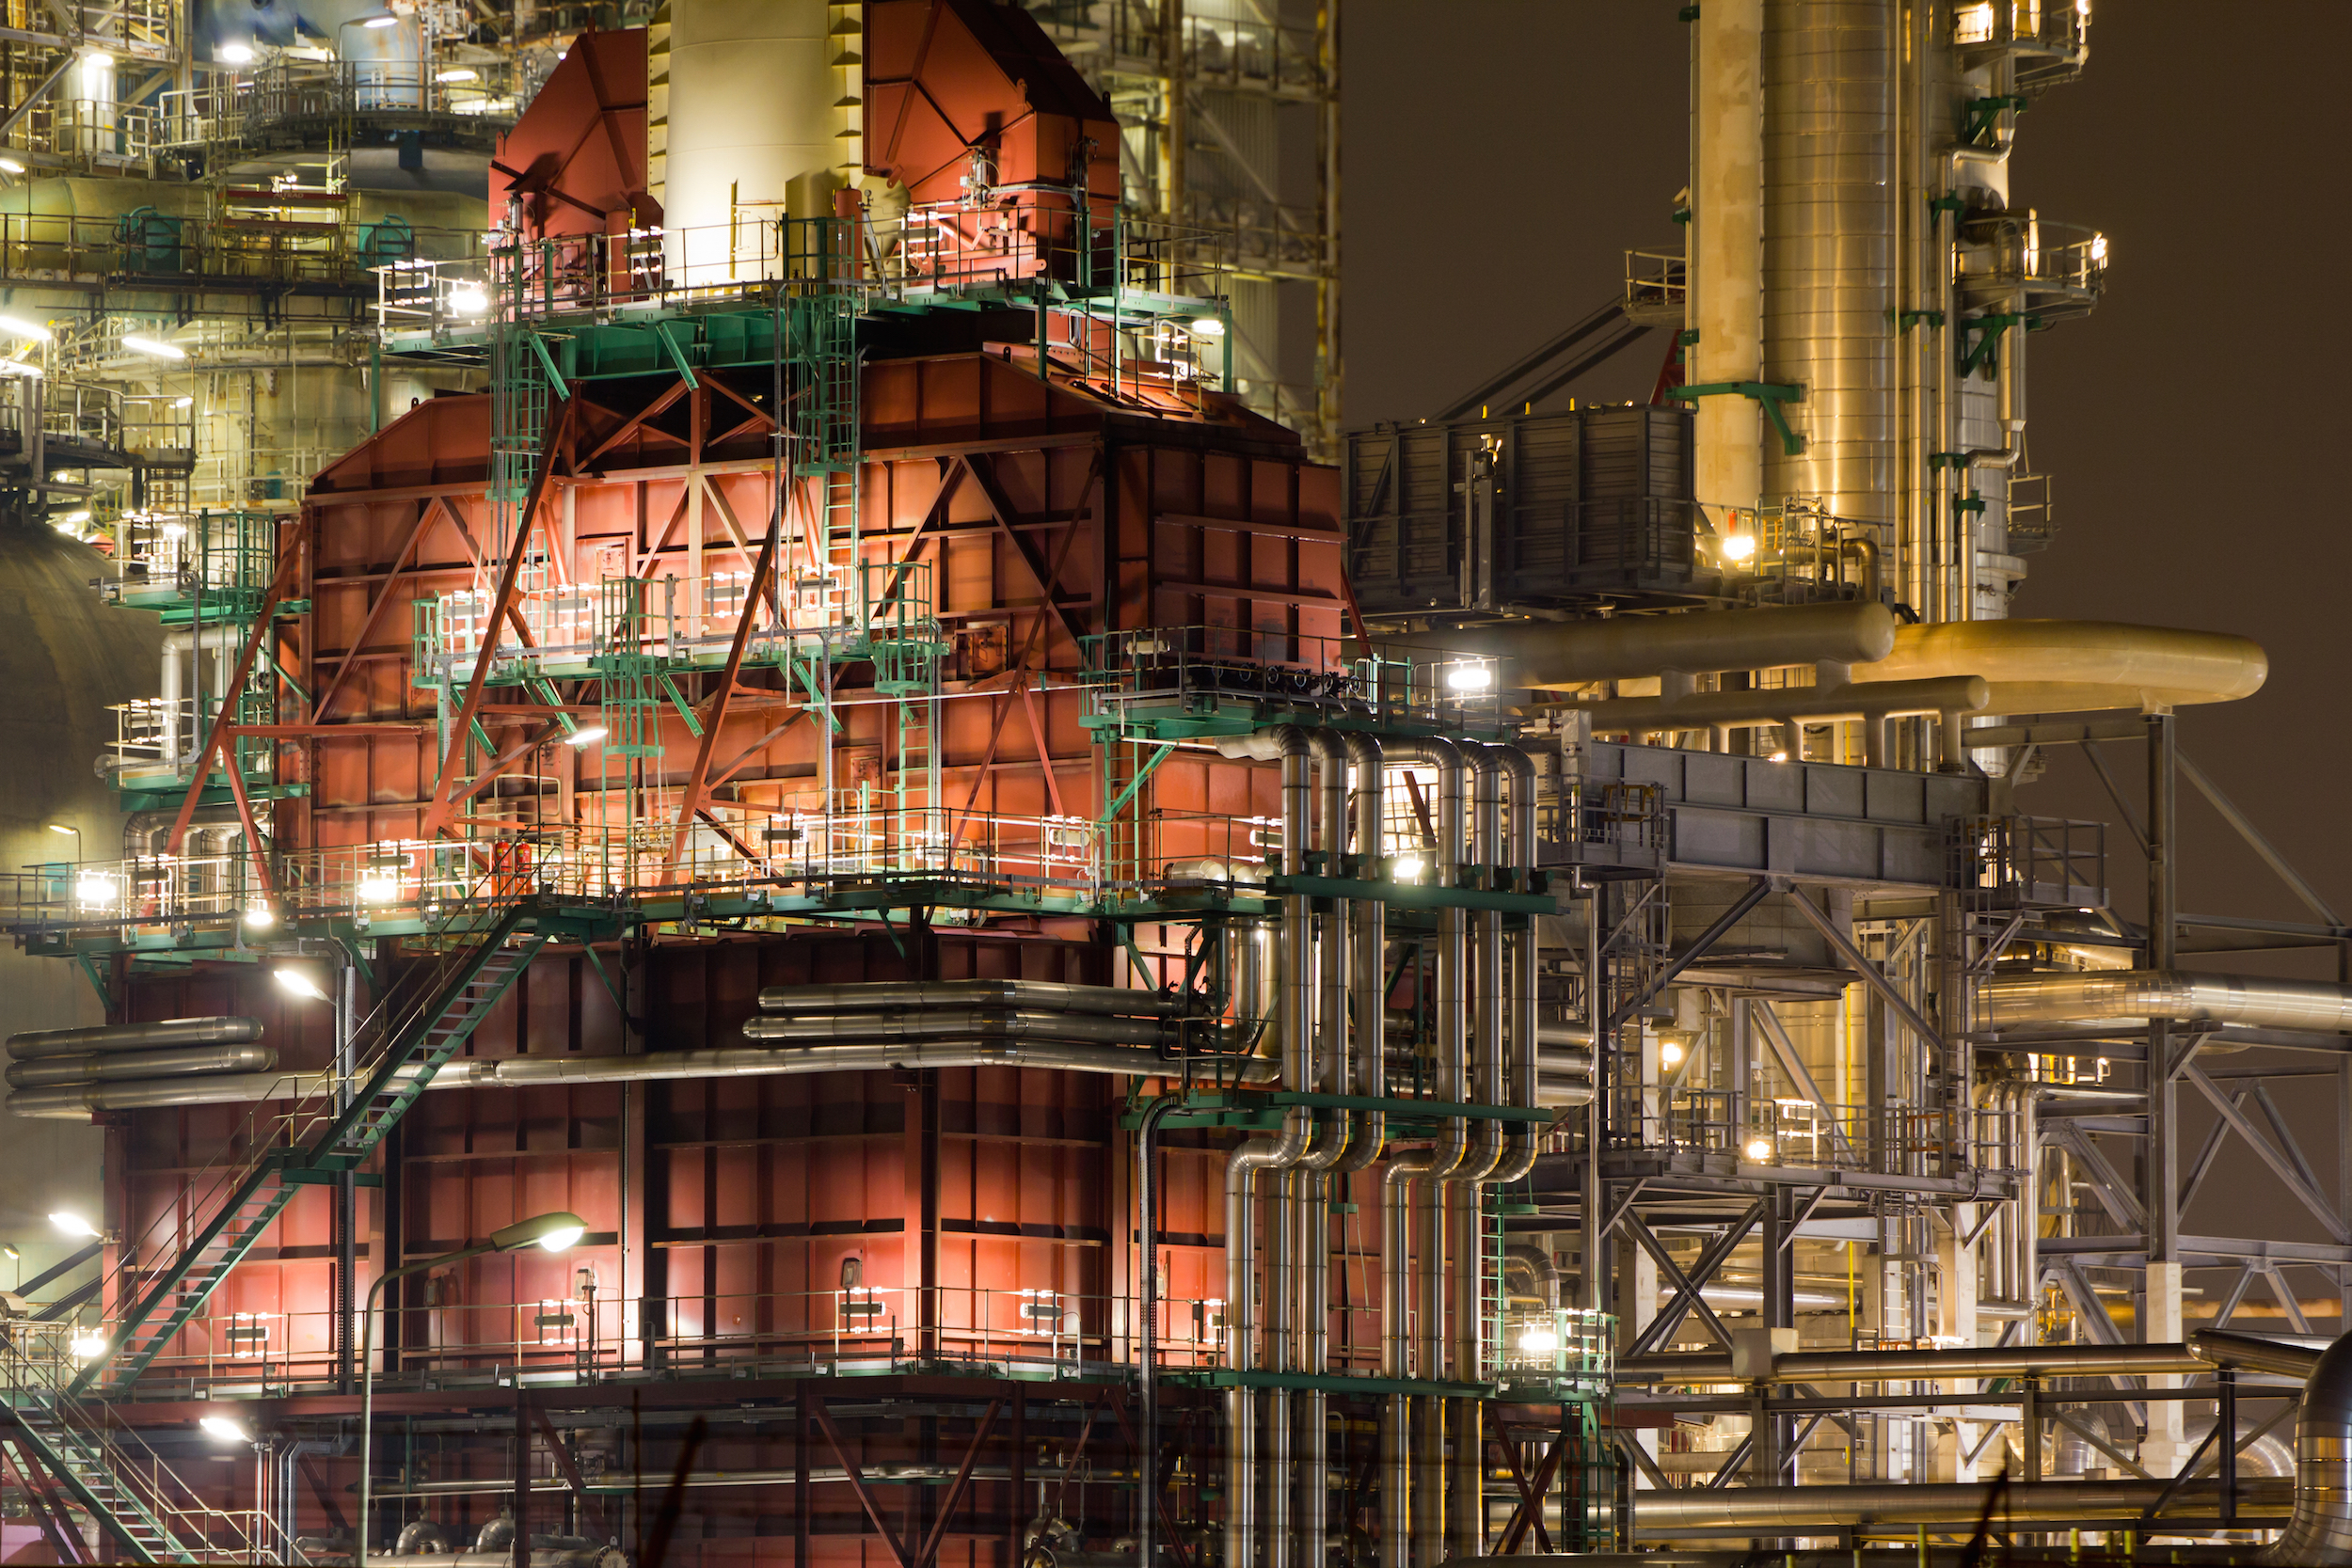 Red Coker Unit of Oil Refinery Plant at Night